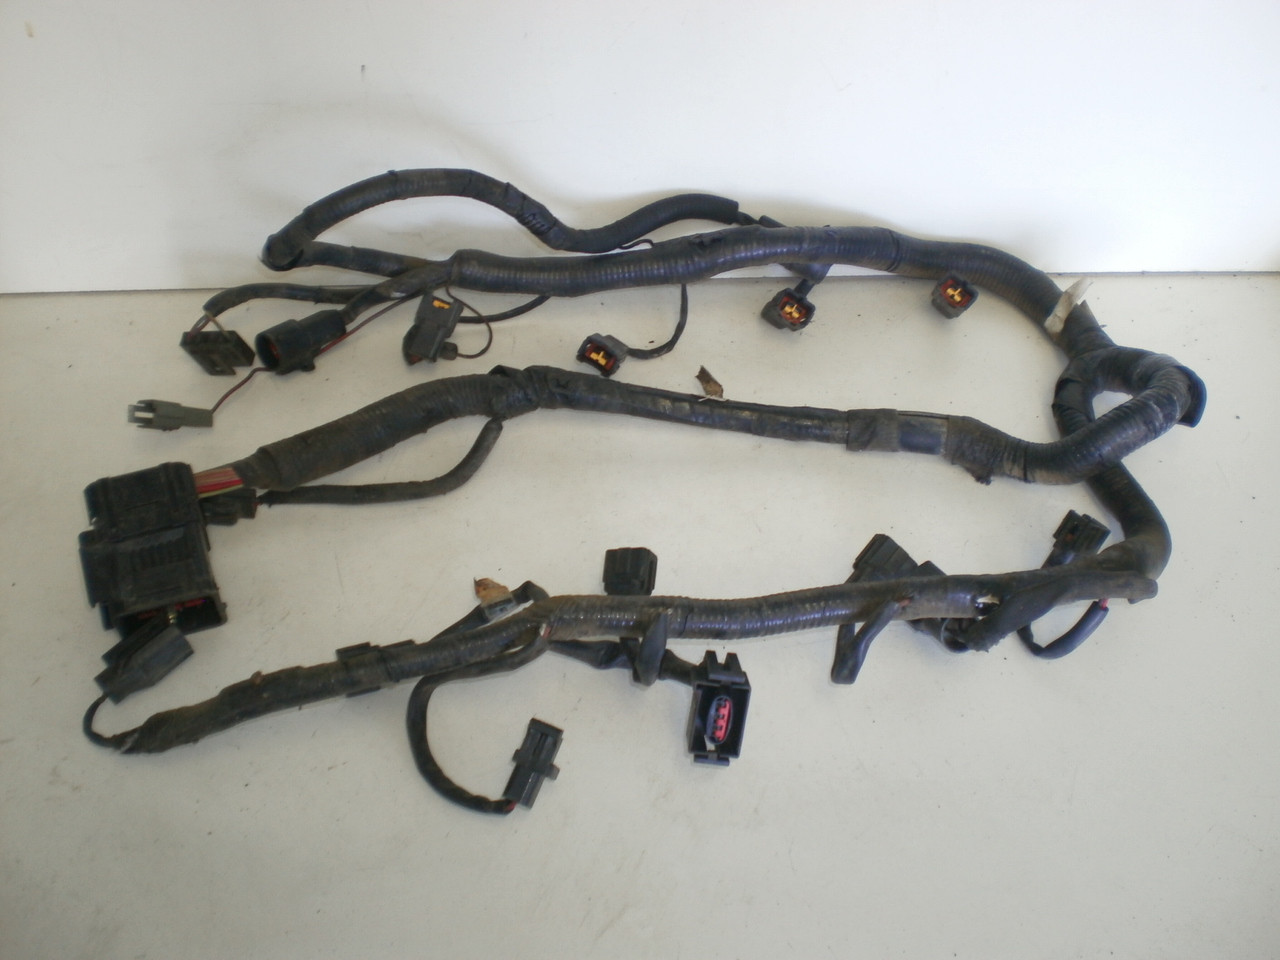 medium resolution of 1995 ford mustang wiring harness wiring diagram 1994 1995 ford mustang 5 0 v8 302 engine